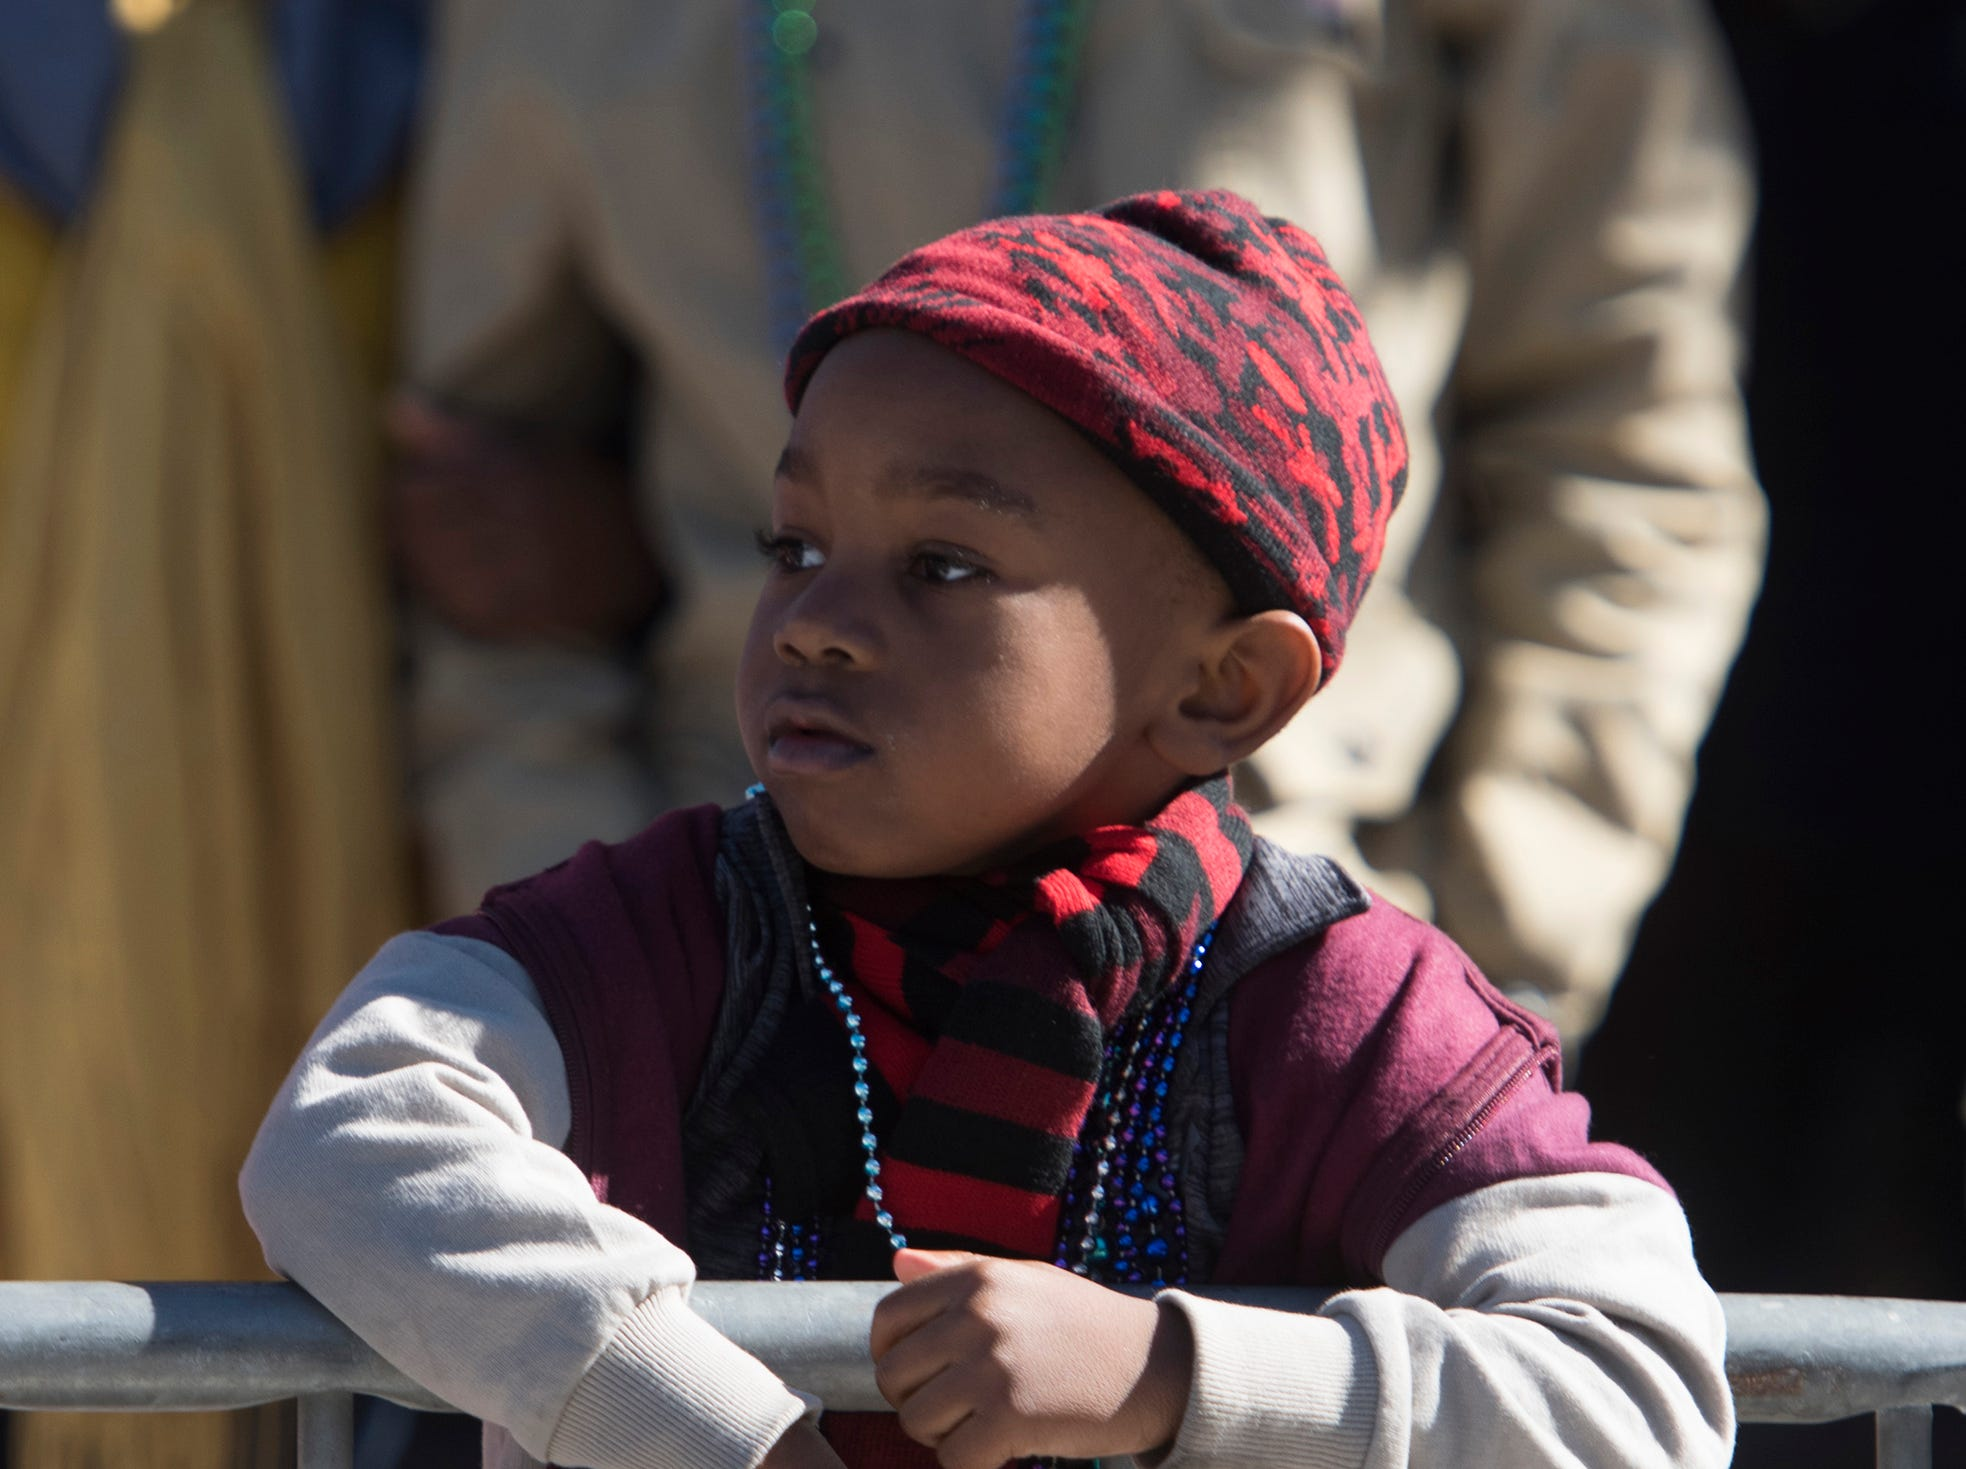 Jaden Dickens looks on as the Martin Luther King, Jr. parade moves closer to his location downtown Pensacola on Monday, Jan. 21, 2019.